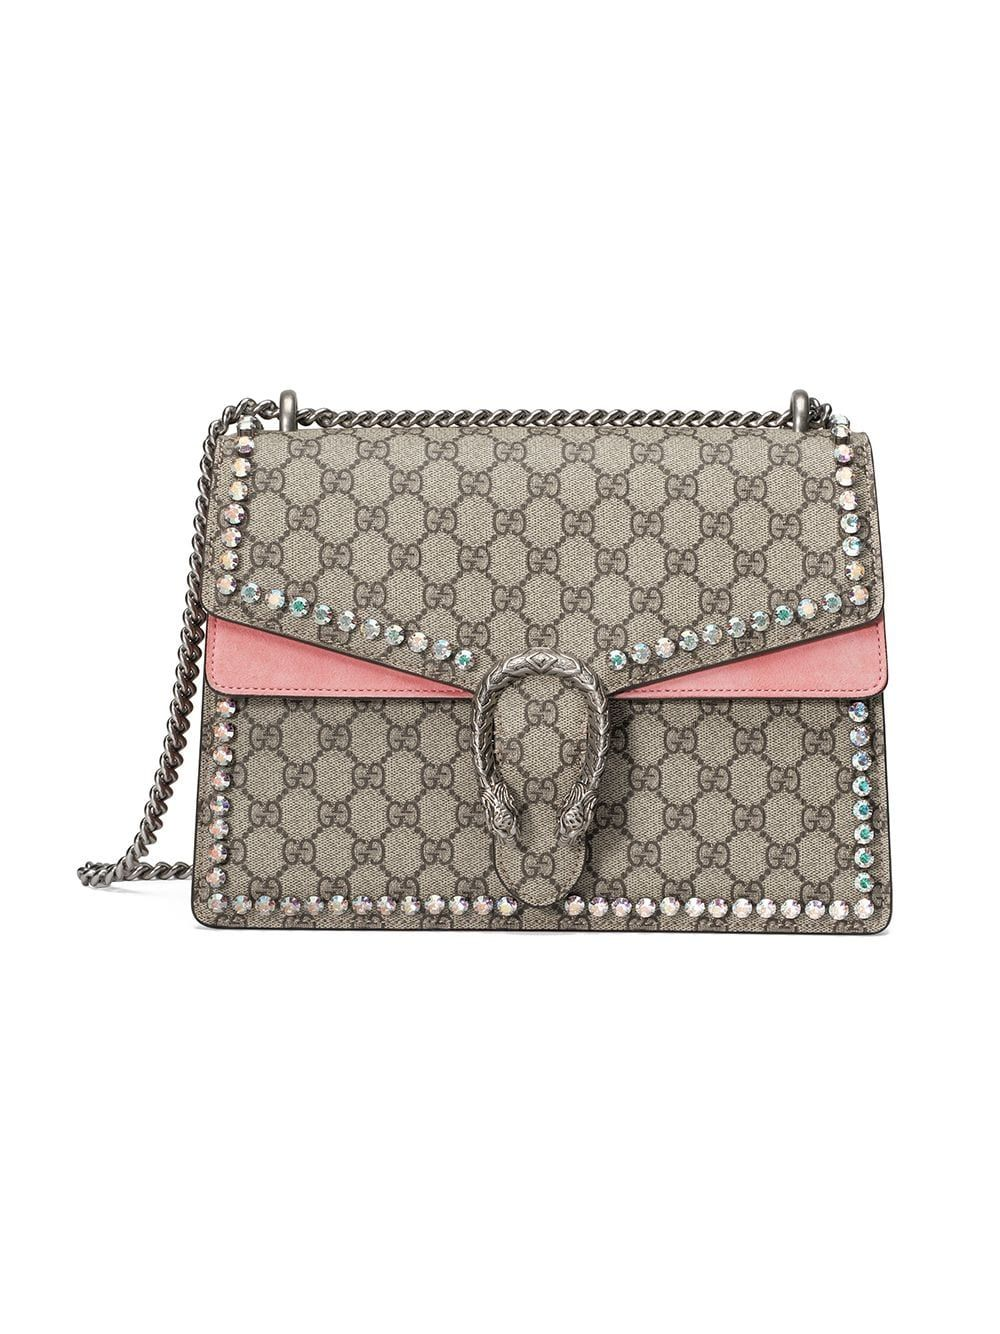 812feff064c Gucci Dionysus GG Supreme Shoulder Bag With Crystals   Style   Gucci ...